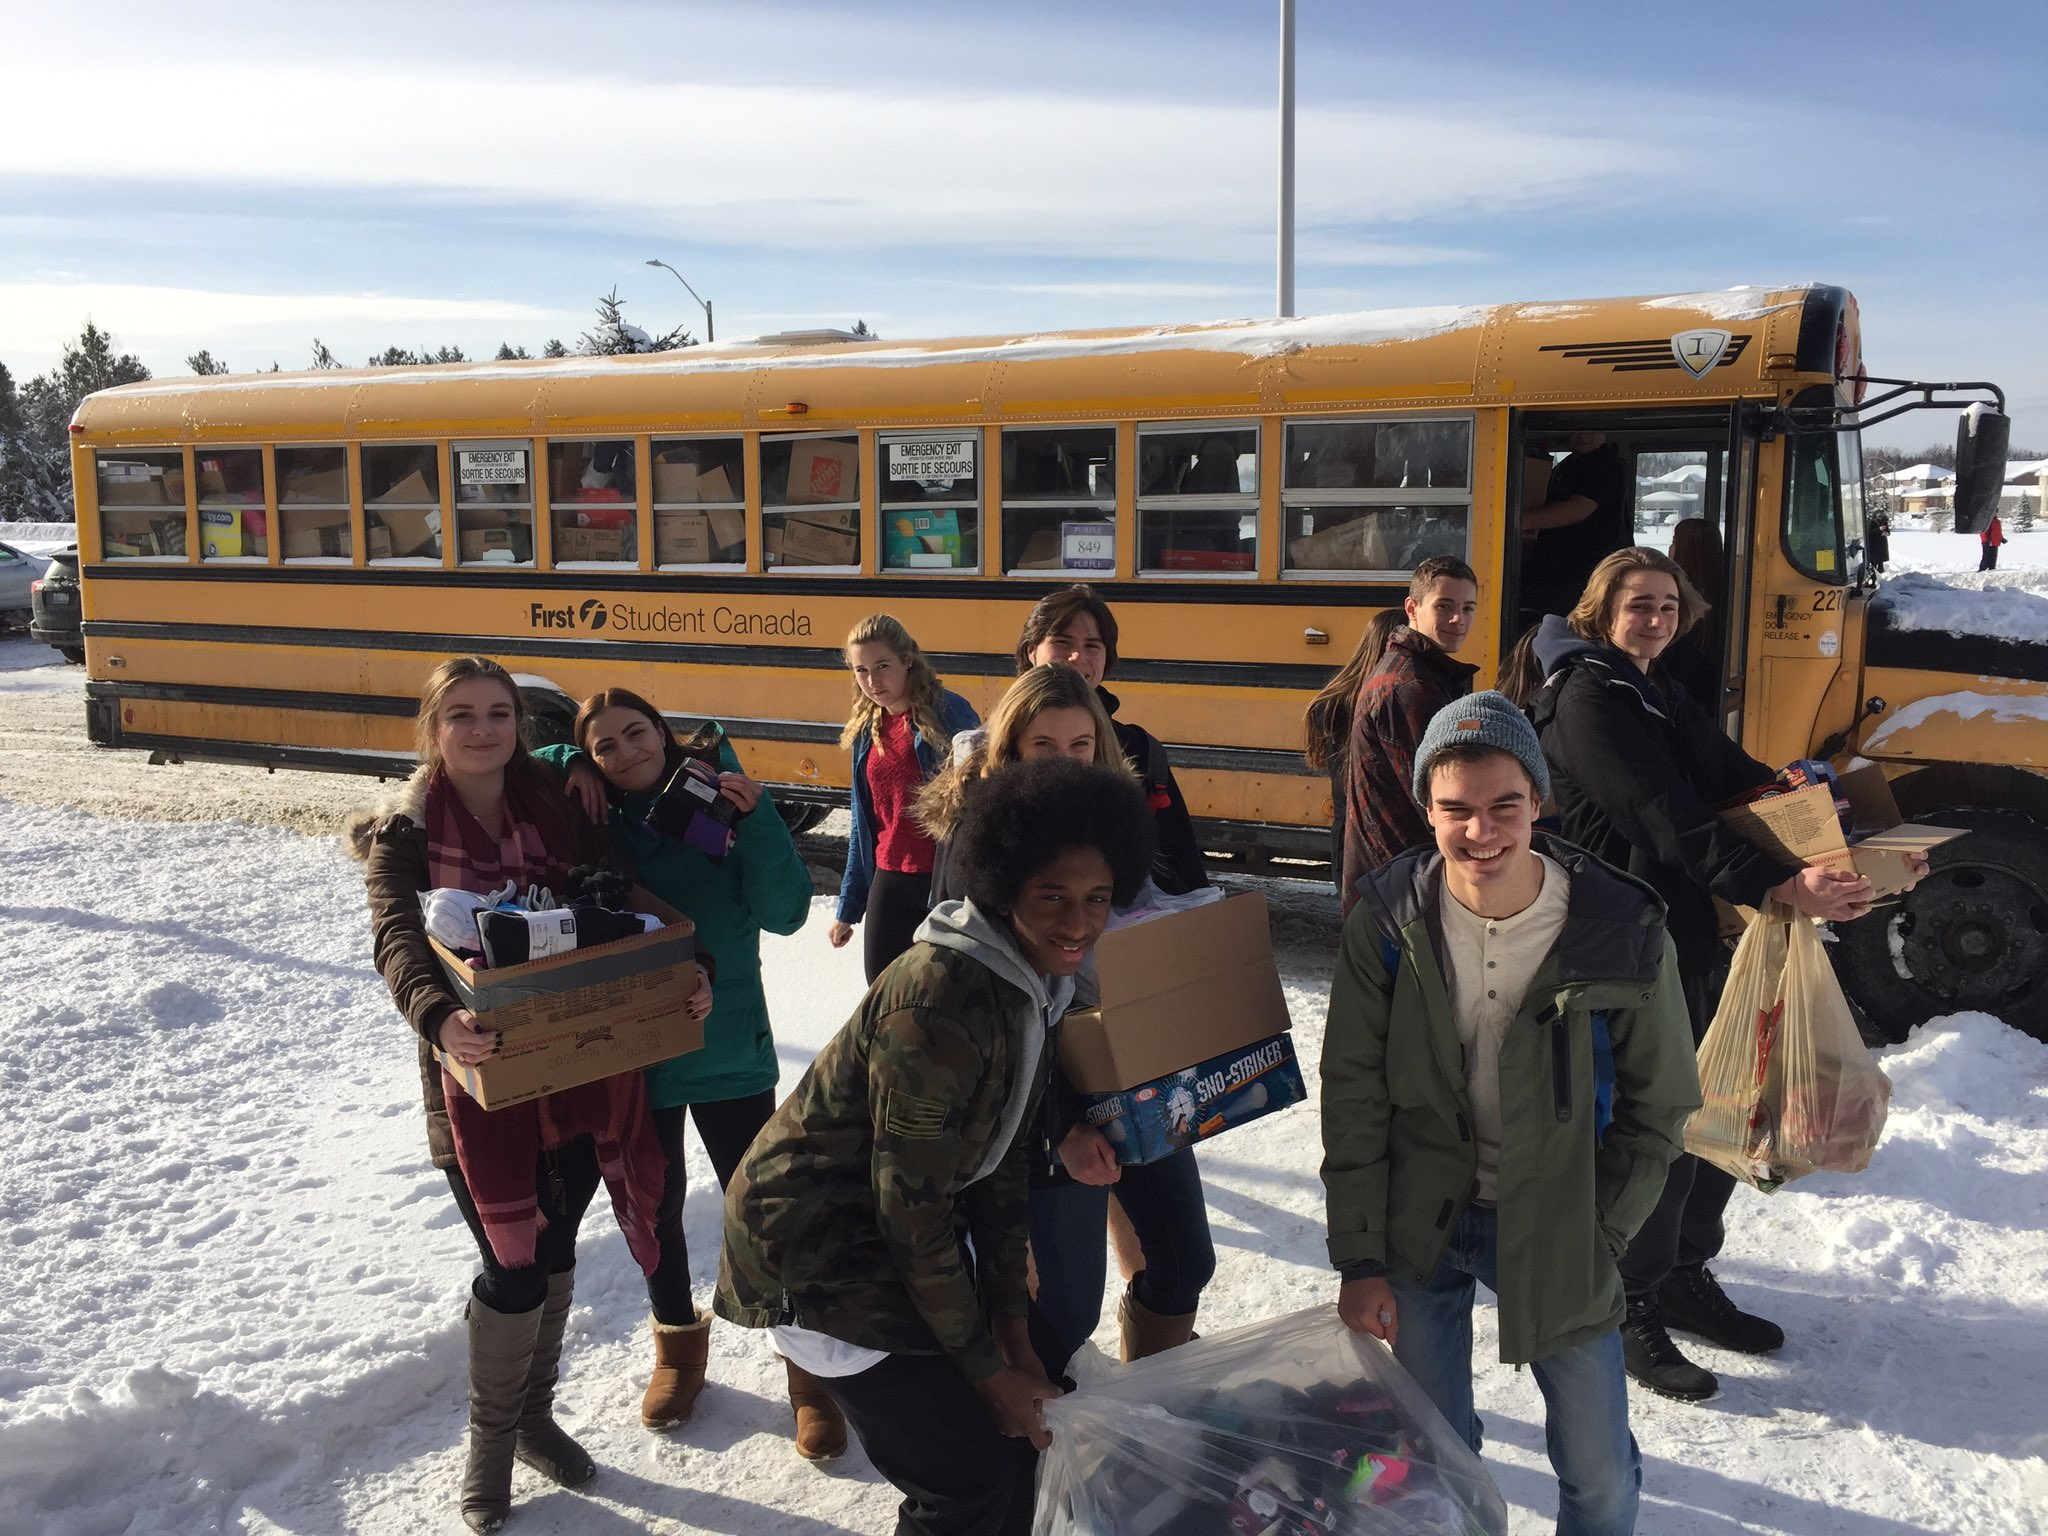 L👀K! It's the bus of cheer! Great job, Knights! Thanks 4 all the donations to  @BarrieXmasCheer #smcdsbcelebrates #JOAproud @KnightZoneJOA https://t.co/EcTn0Df0aq